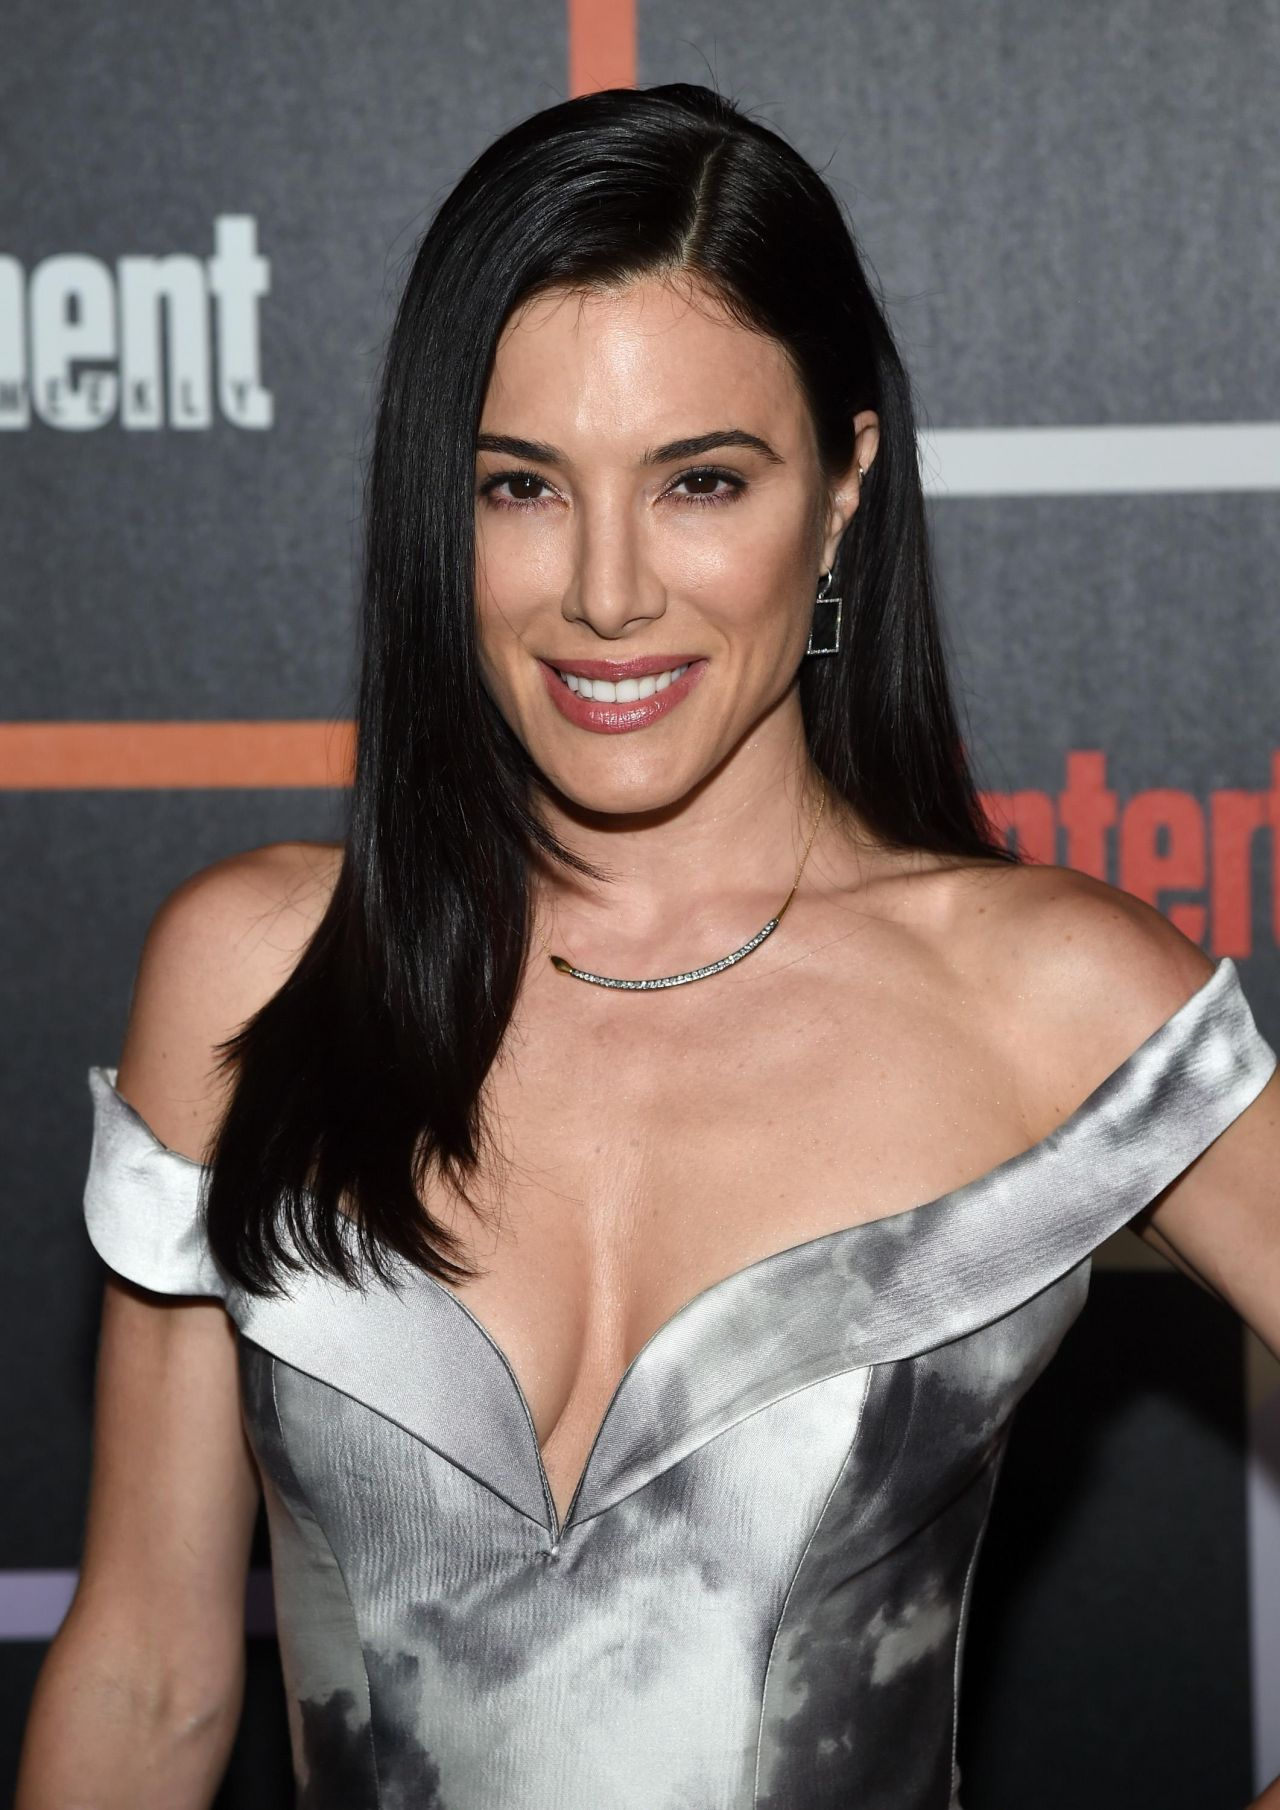 Congratulate, remarkable jaime murray pictures good